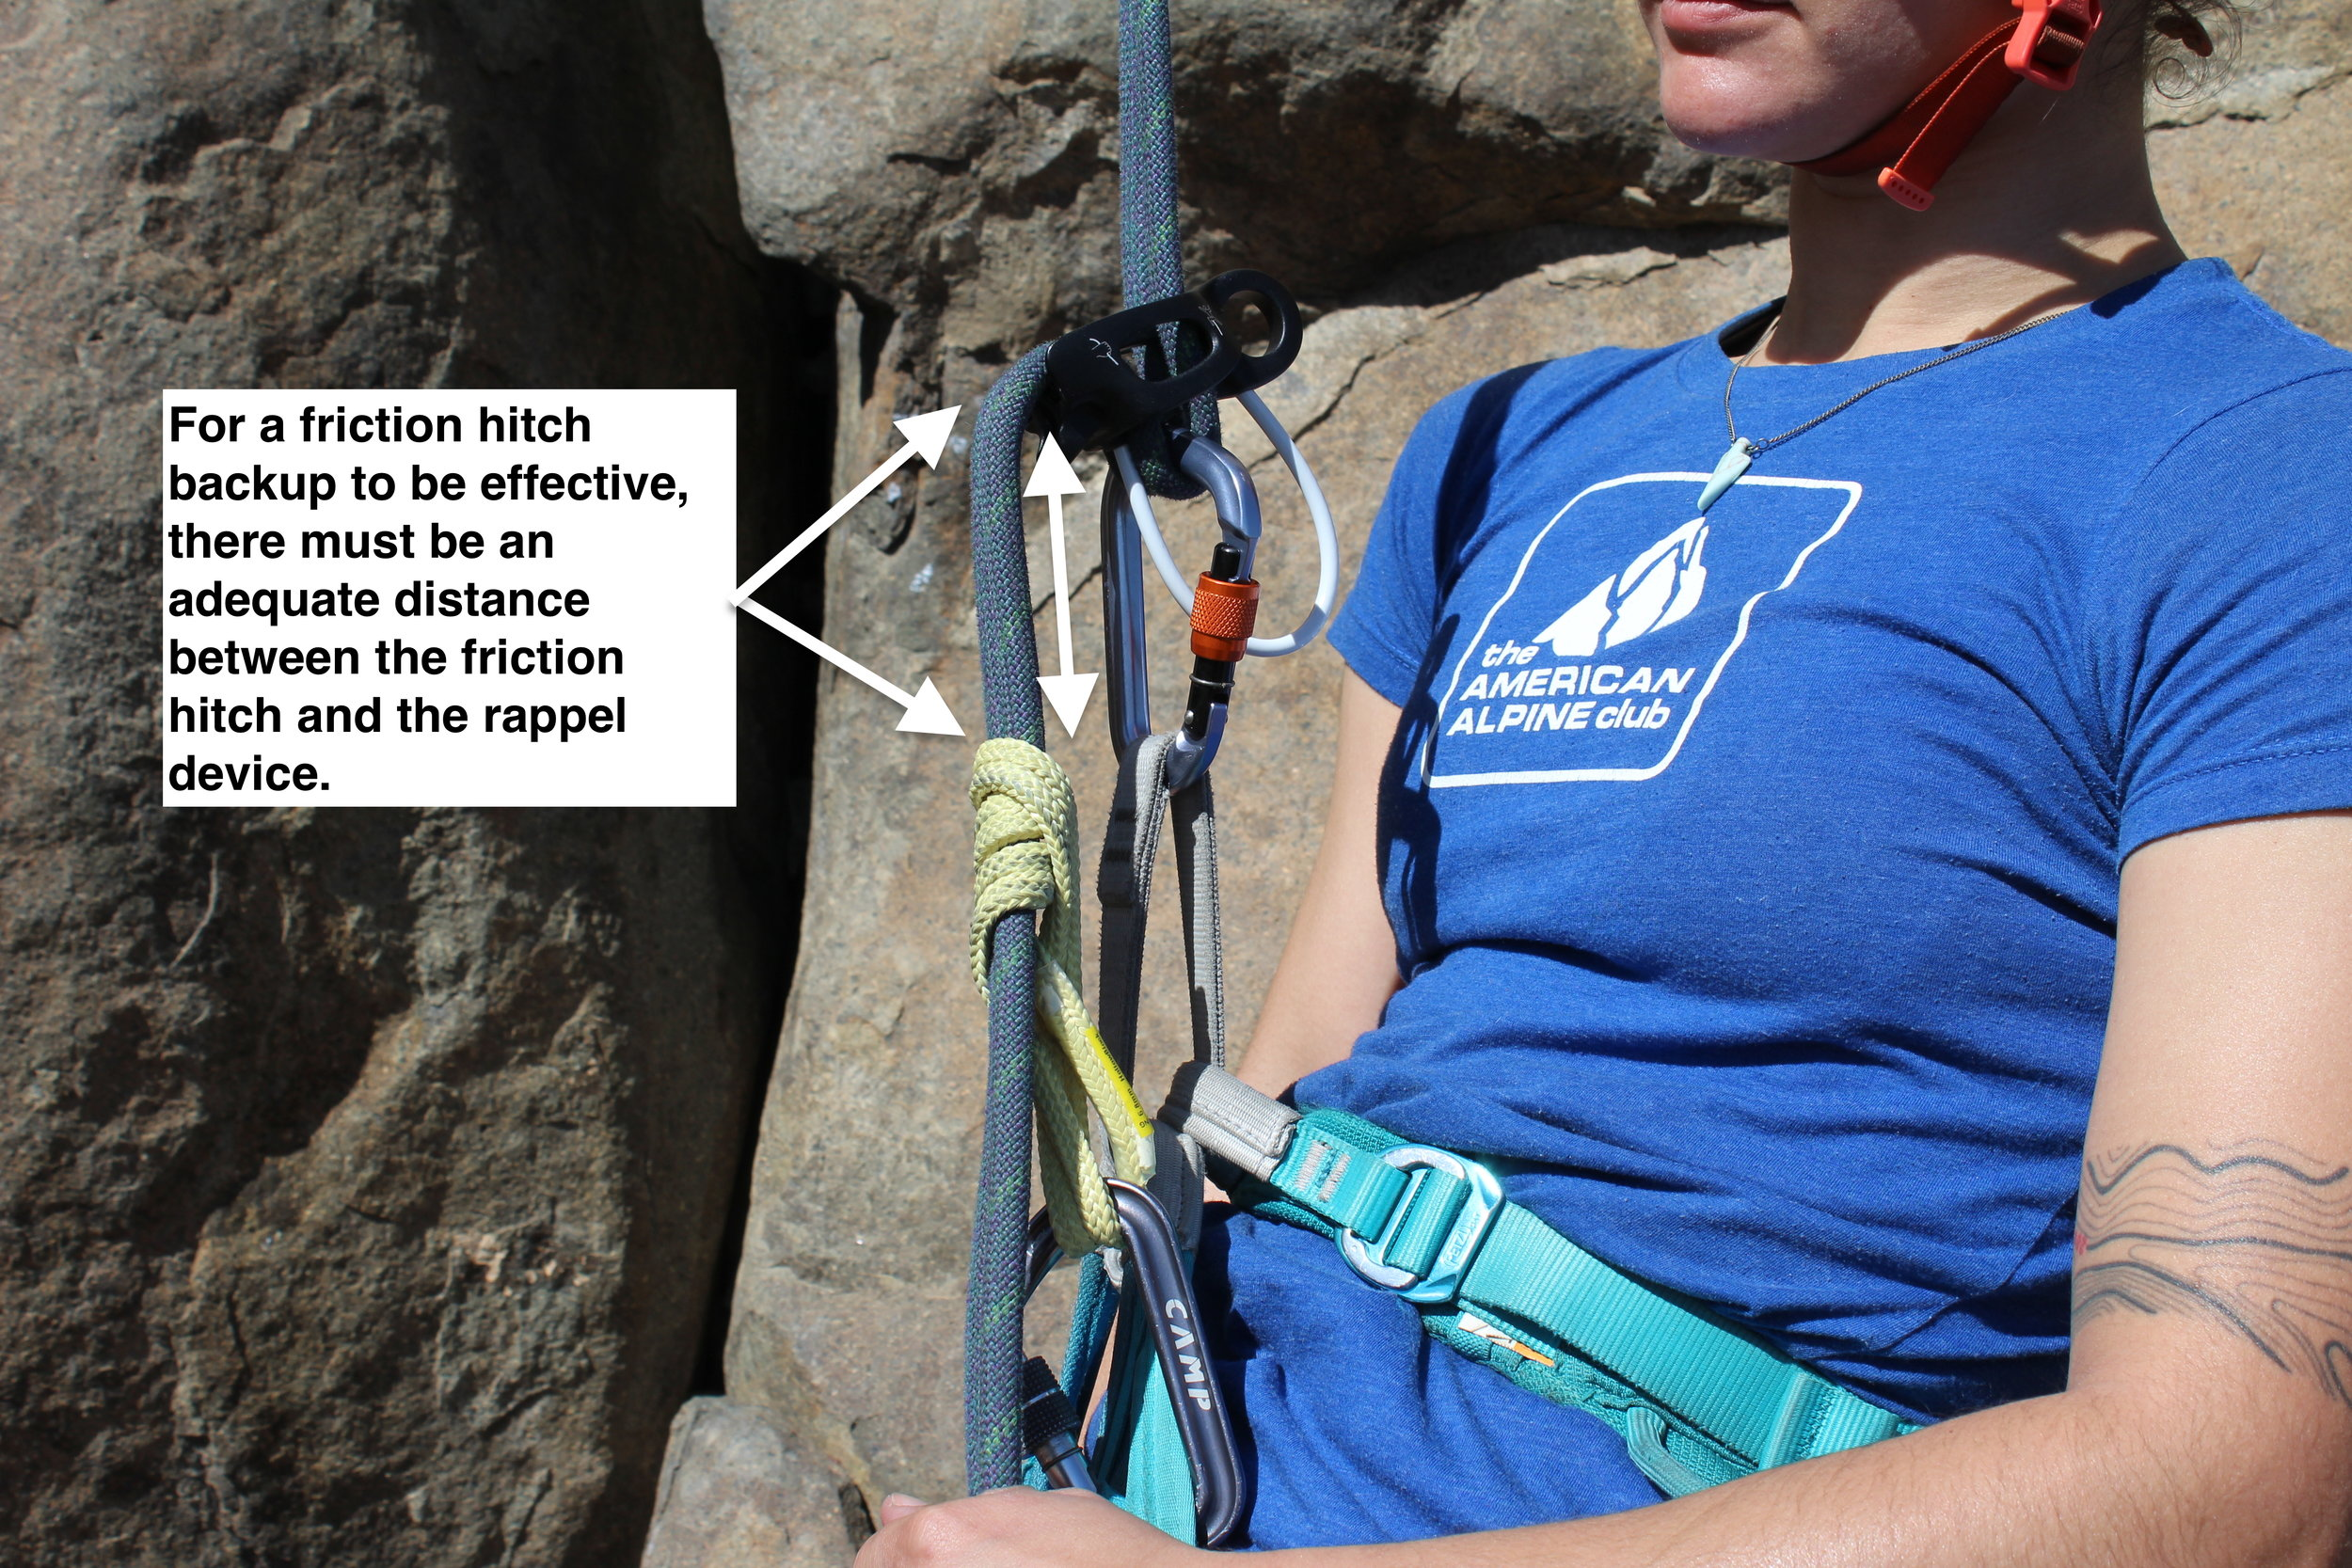 Precise rigging is vital to an effective rappel backup. It's not enough to apply a friction hitch; the distances and positions of all the pieces have to be just right.